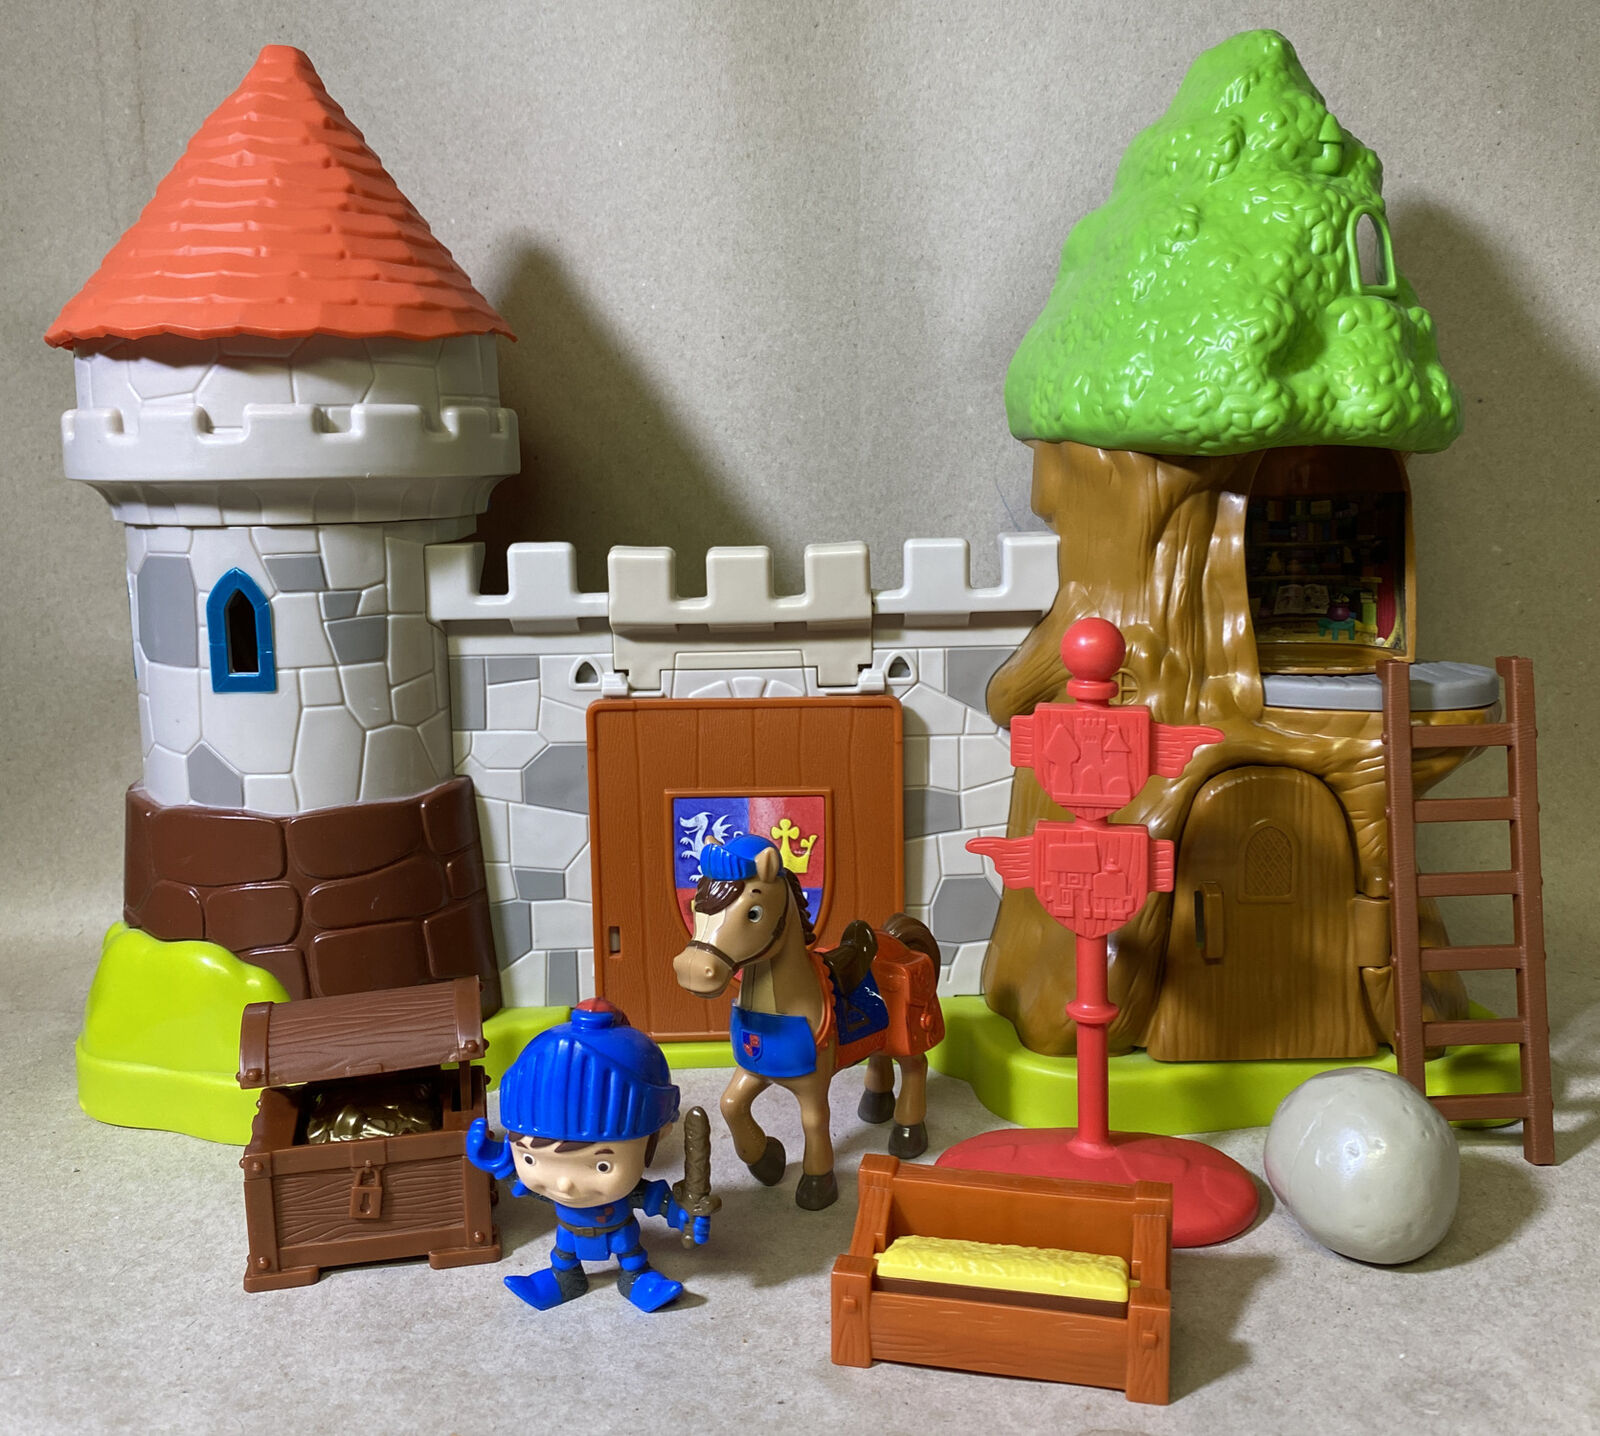 Details about  /Mike The Knight Deluxe Glendragon Playset Play Set Rare Toy NEW